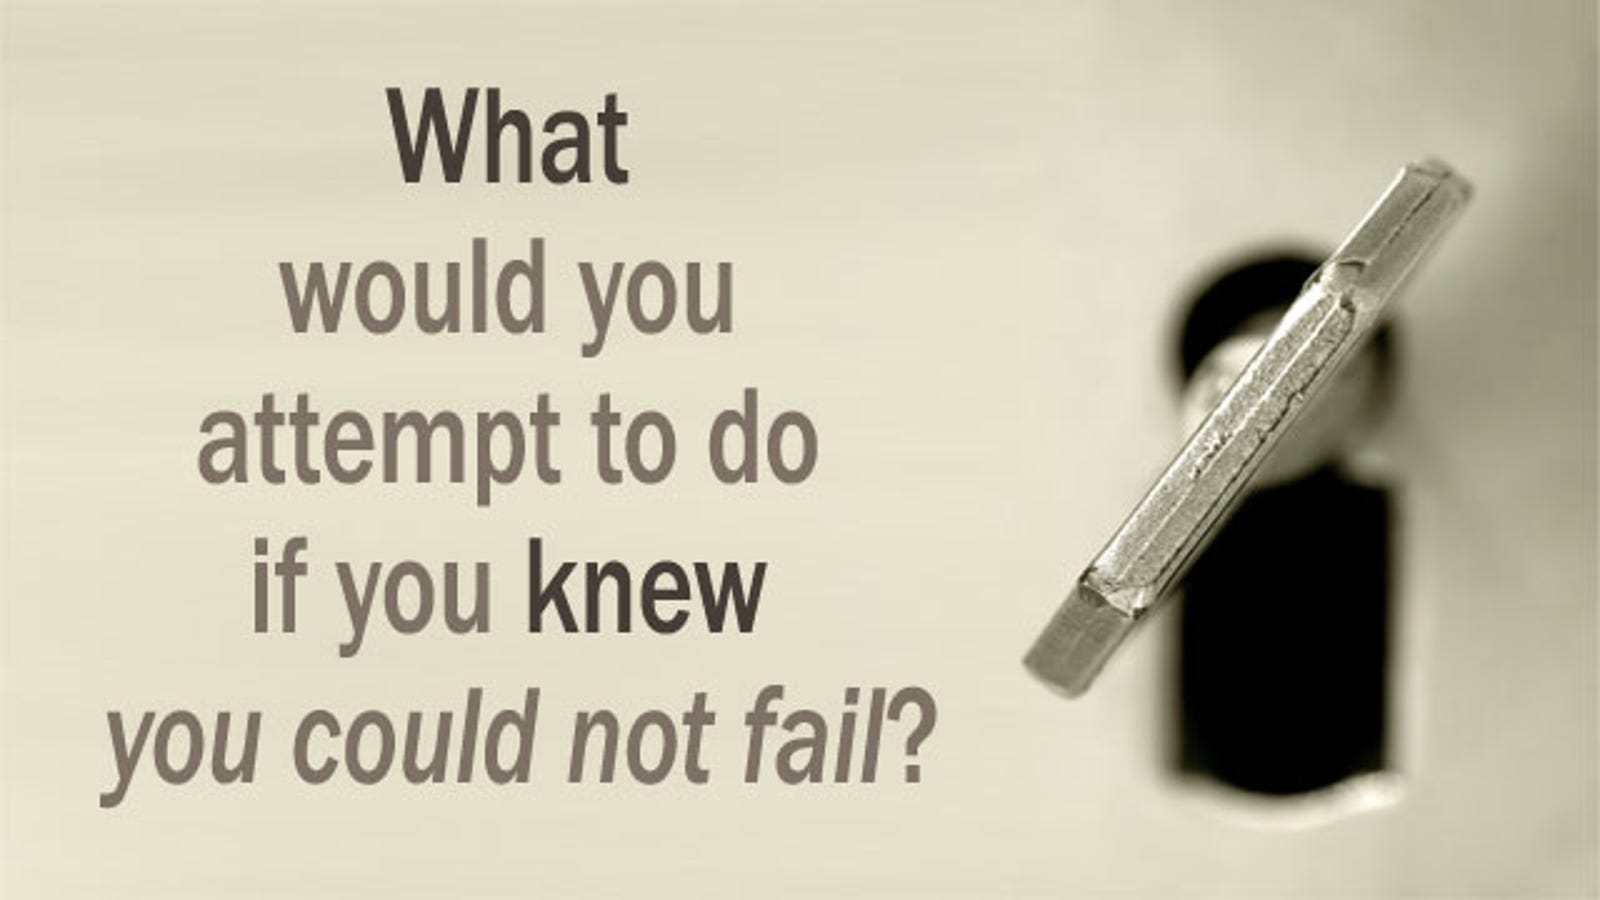 what would you attempt to do if you knew you could not fail